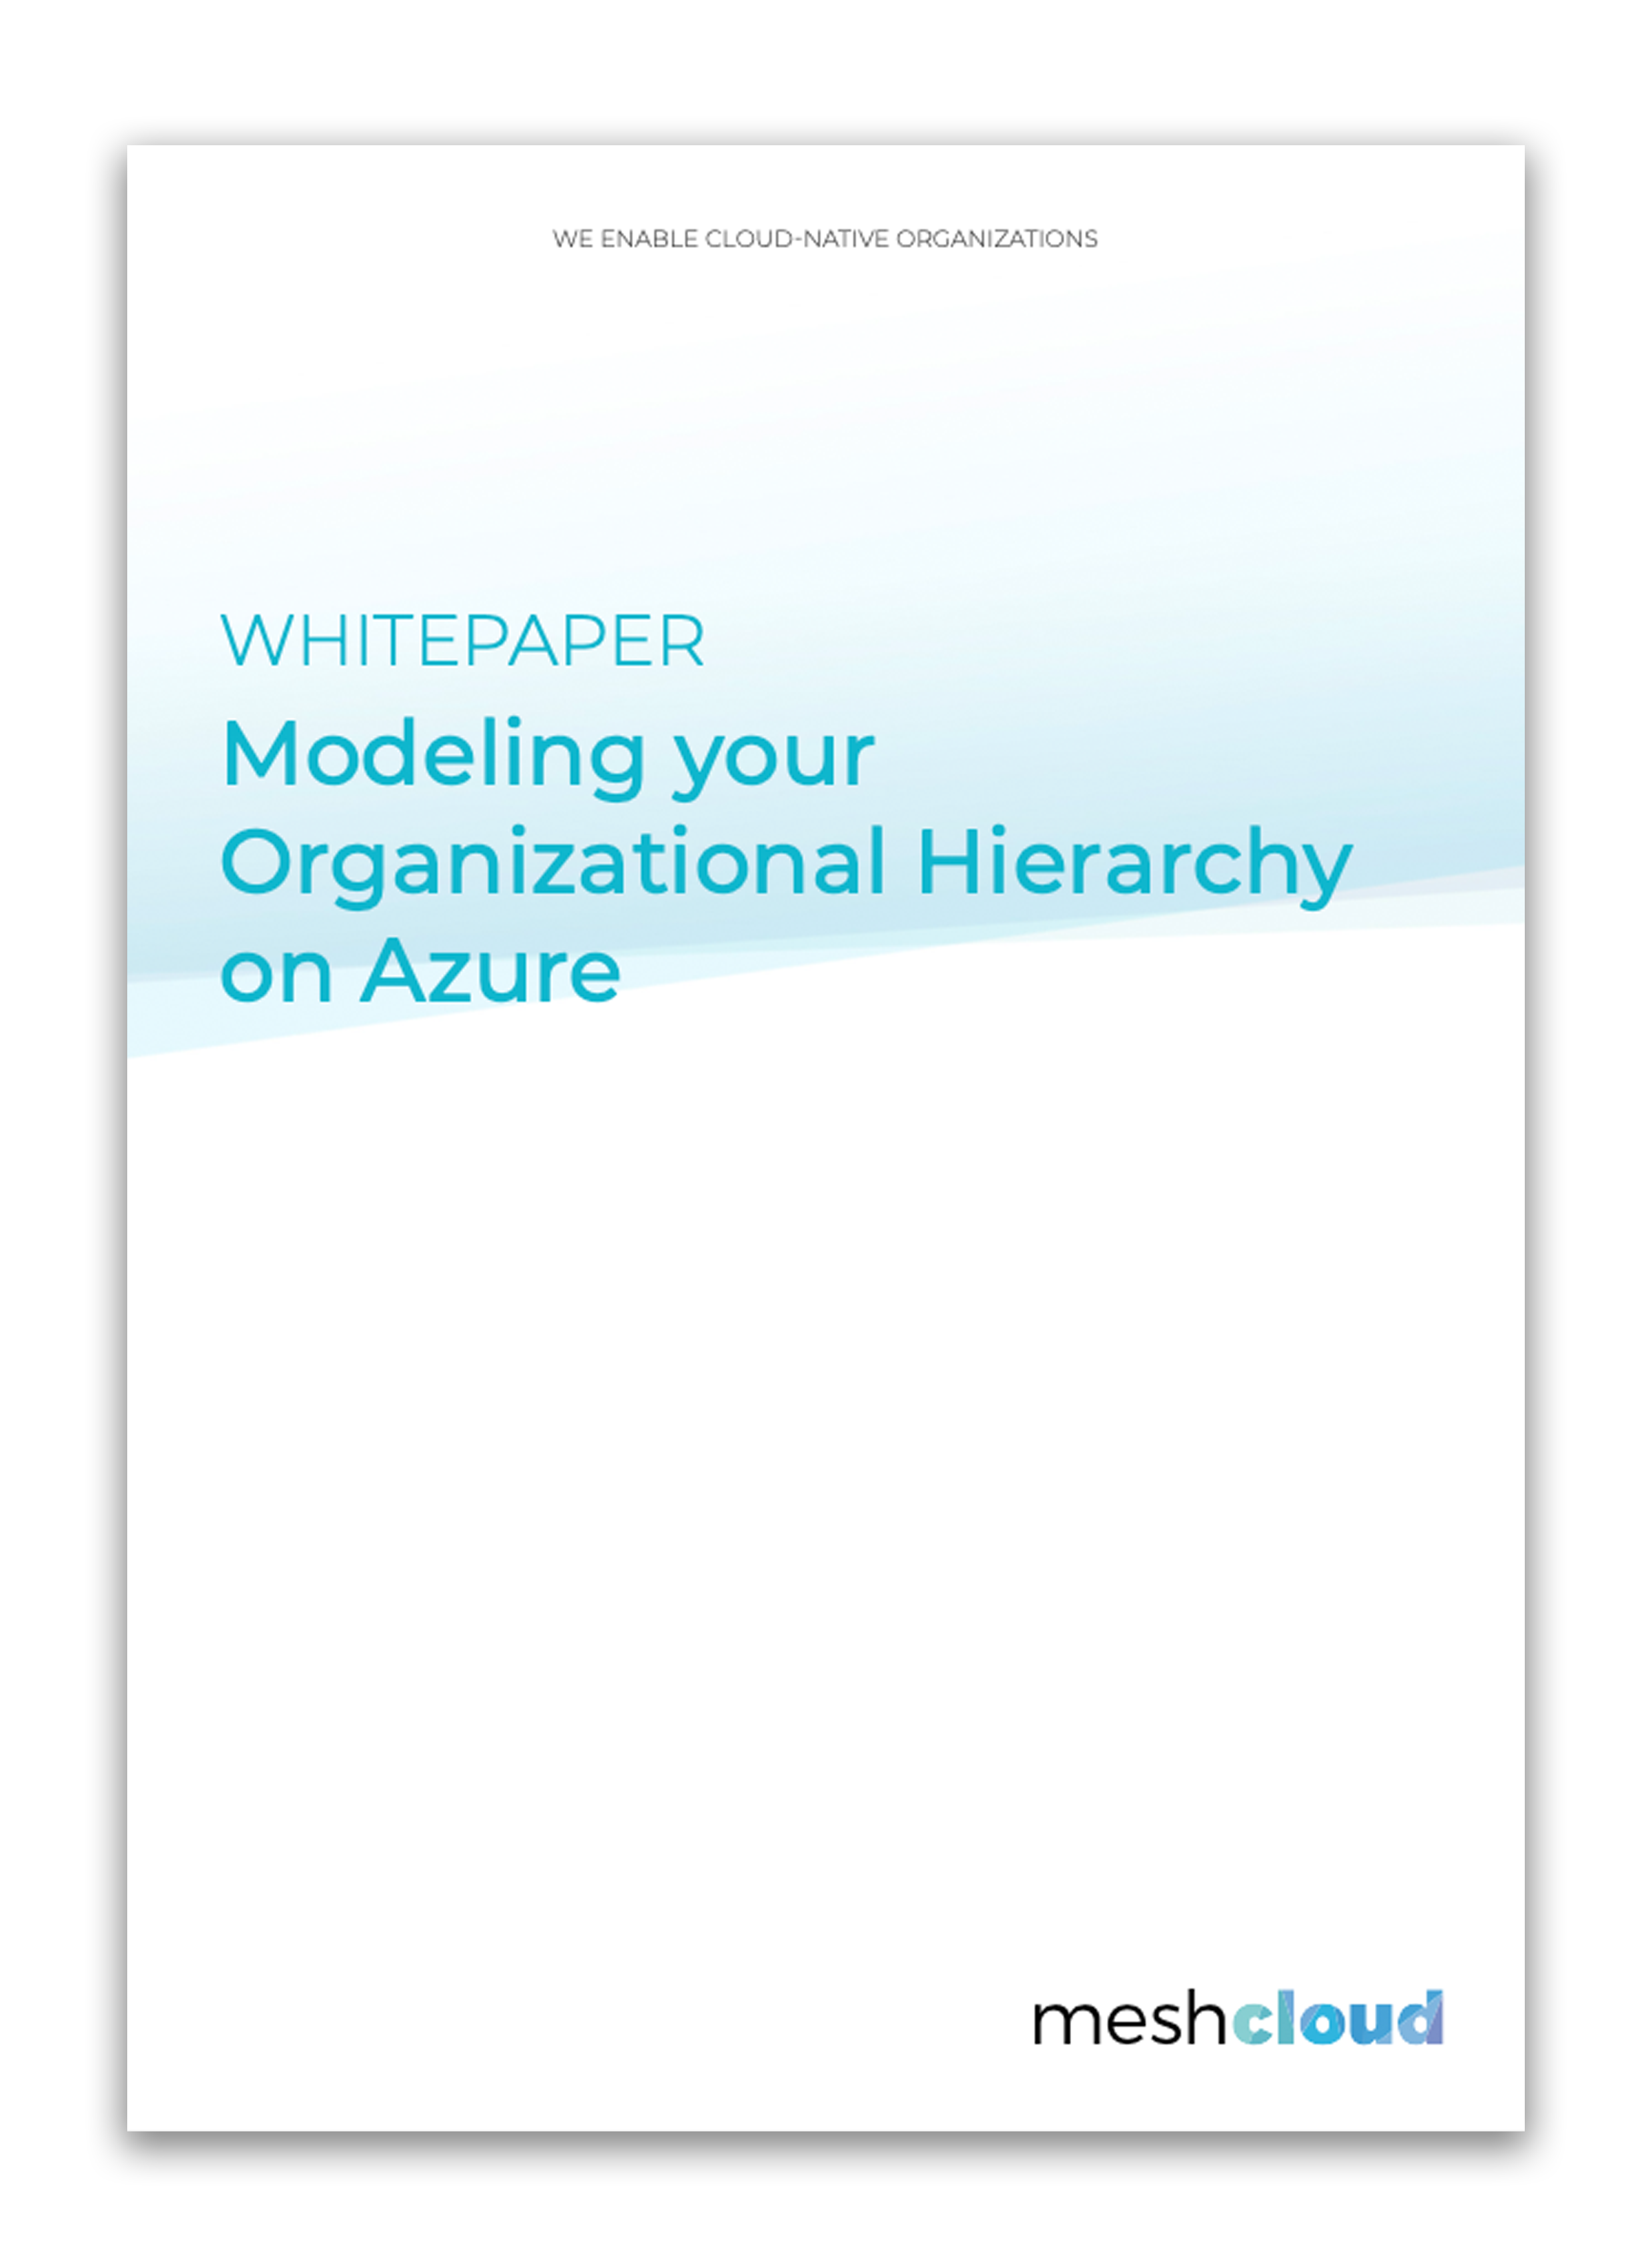 Whitepaper Modeling your Organizational Hierarchy on Azure